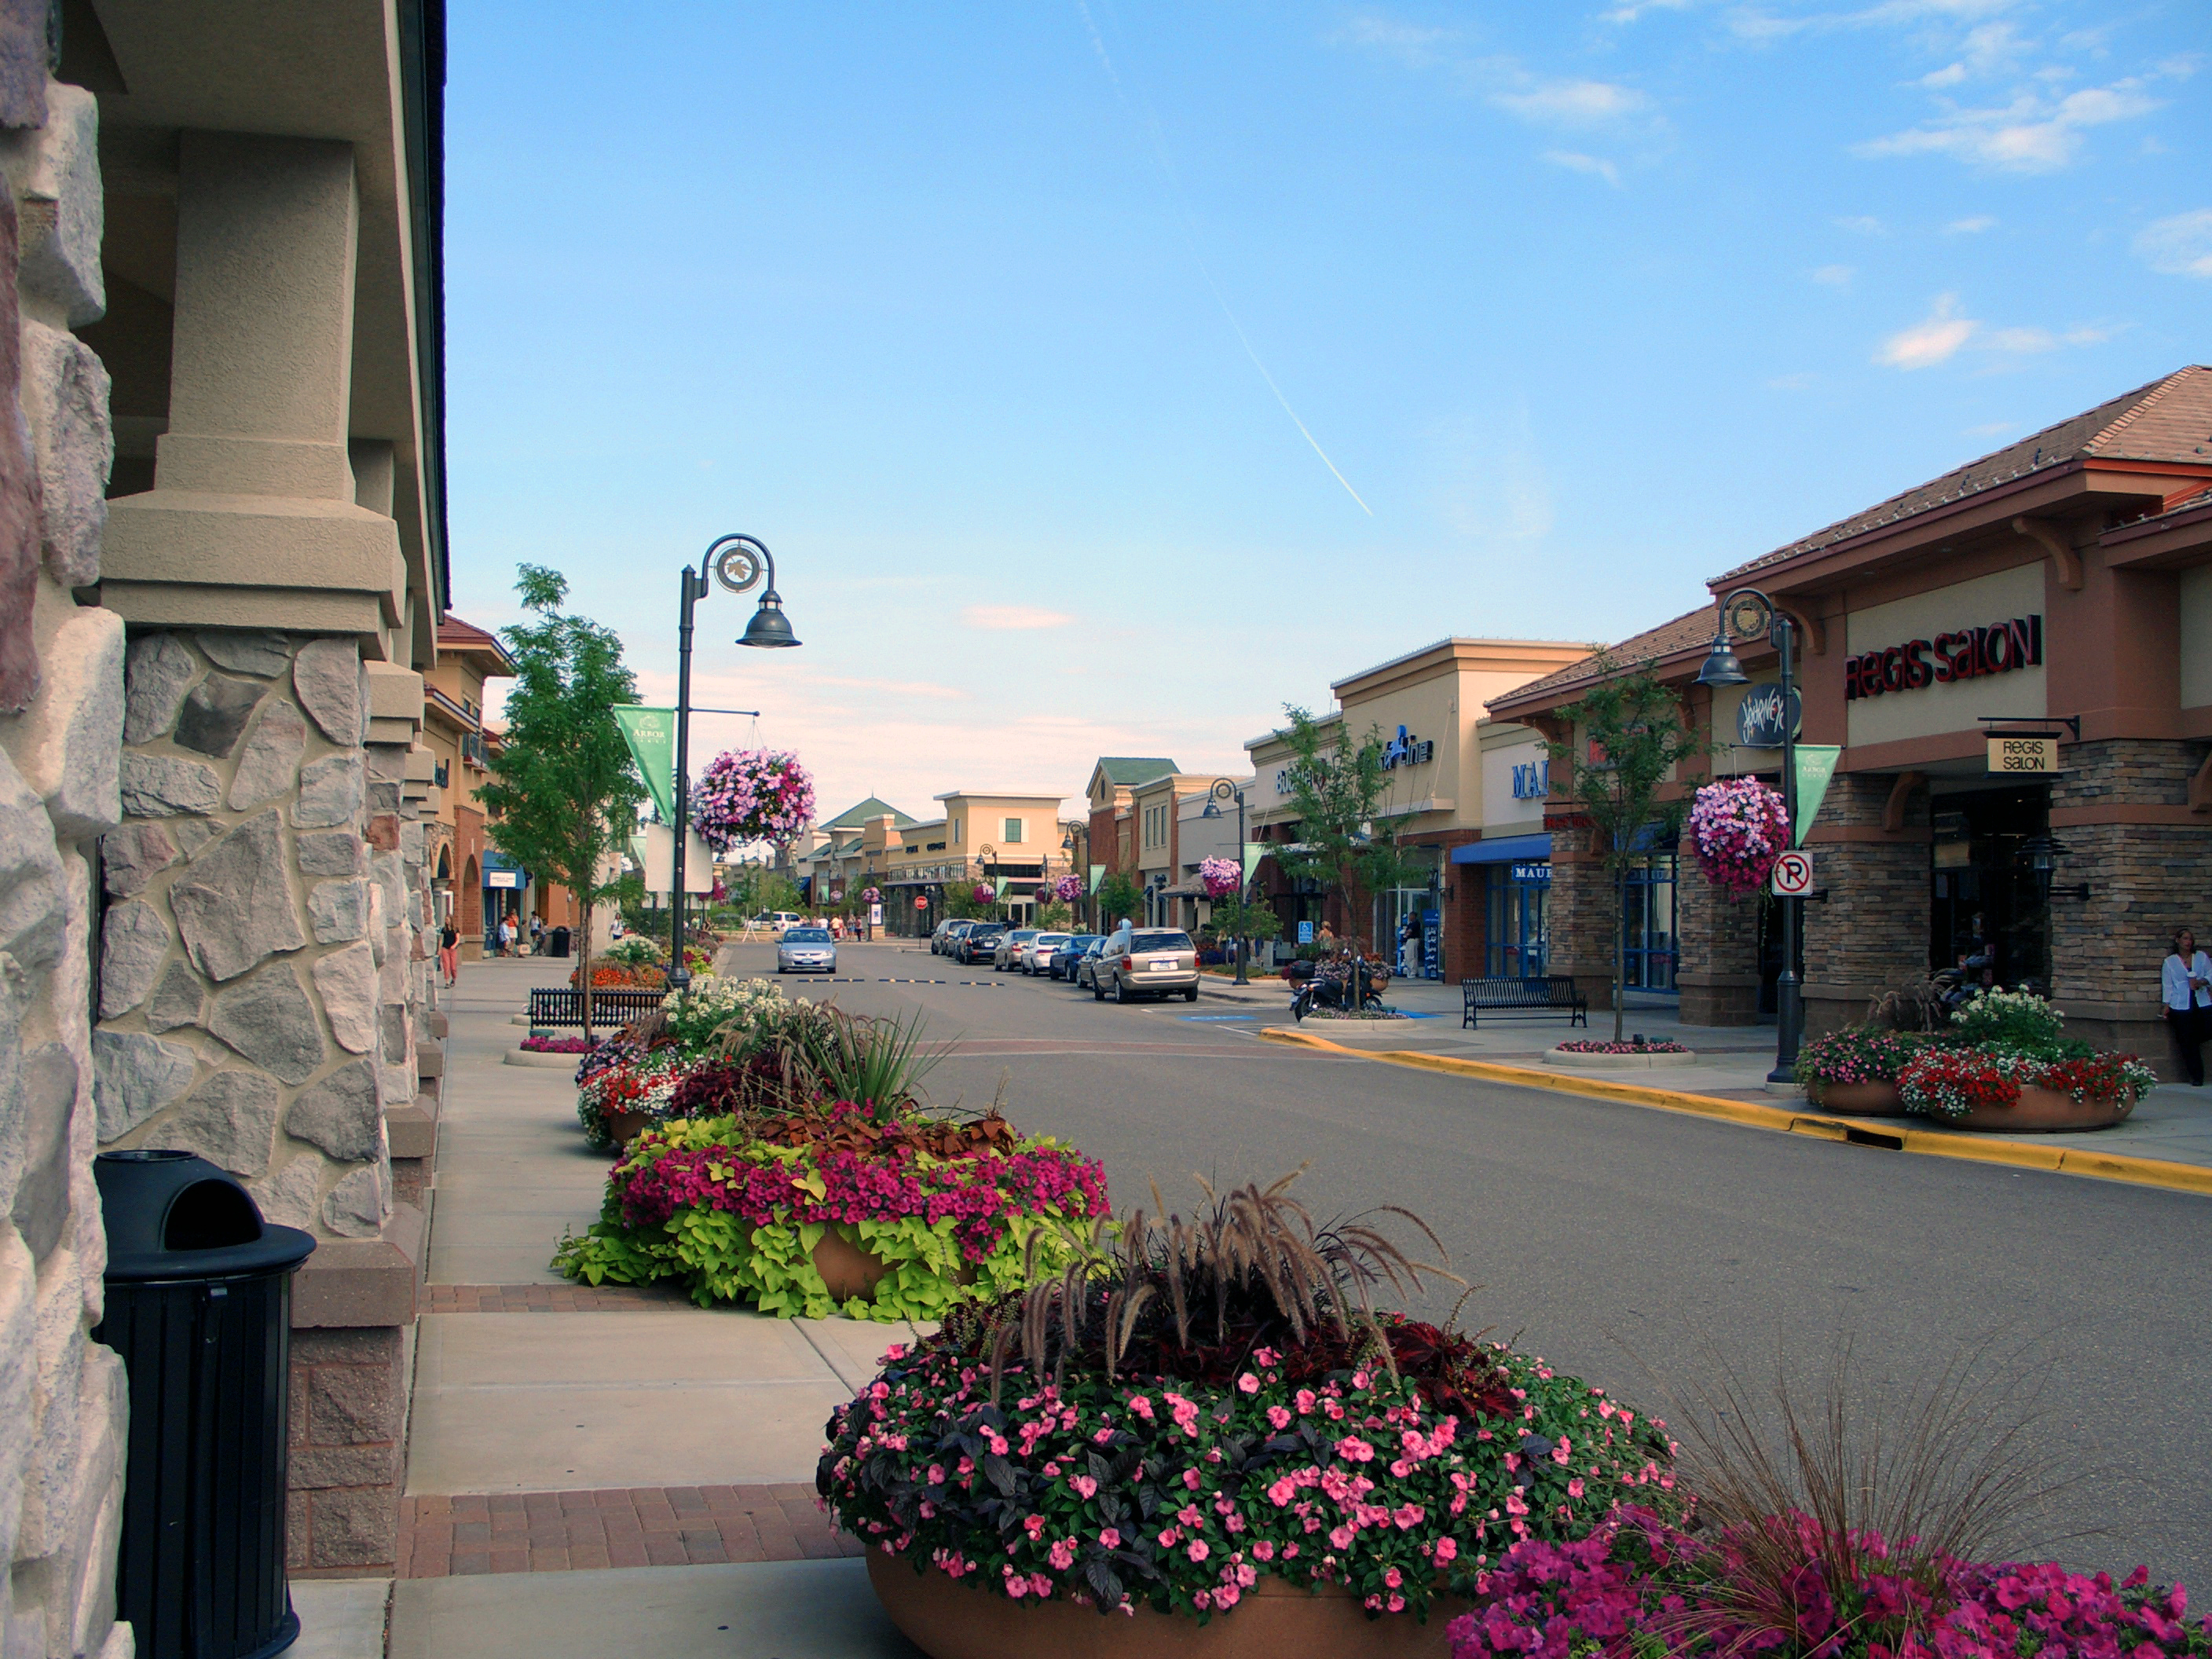 Jul 17,  · Arbor Lakes is a beautul shopping area. The stores are connected with well maintanined sidewalks. You will find every store you can possible want in a beautiful setting/5(65).